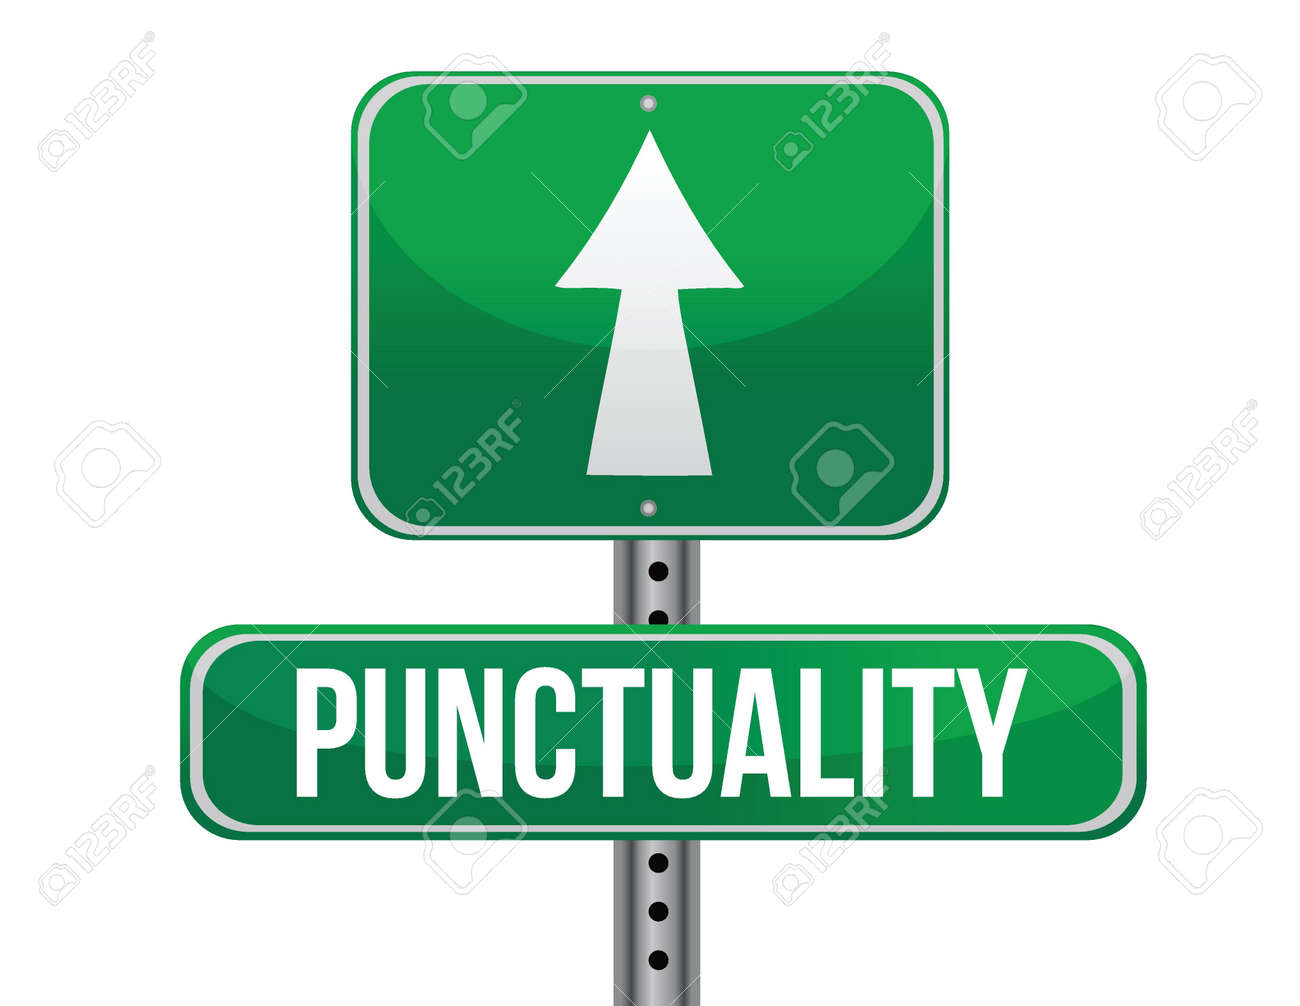 punctuality road sign illustration design over a white background - 19311194